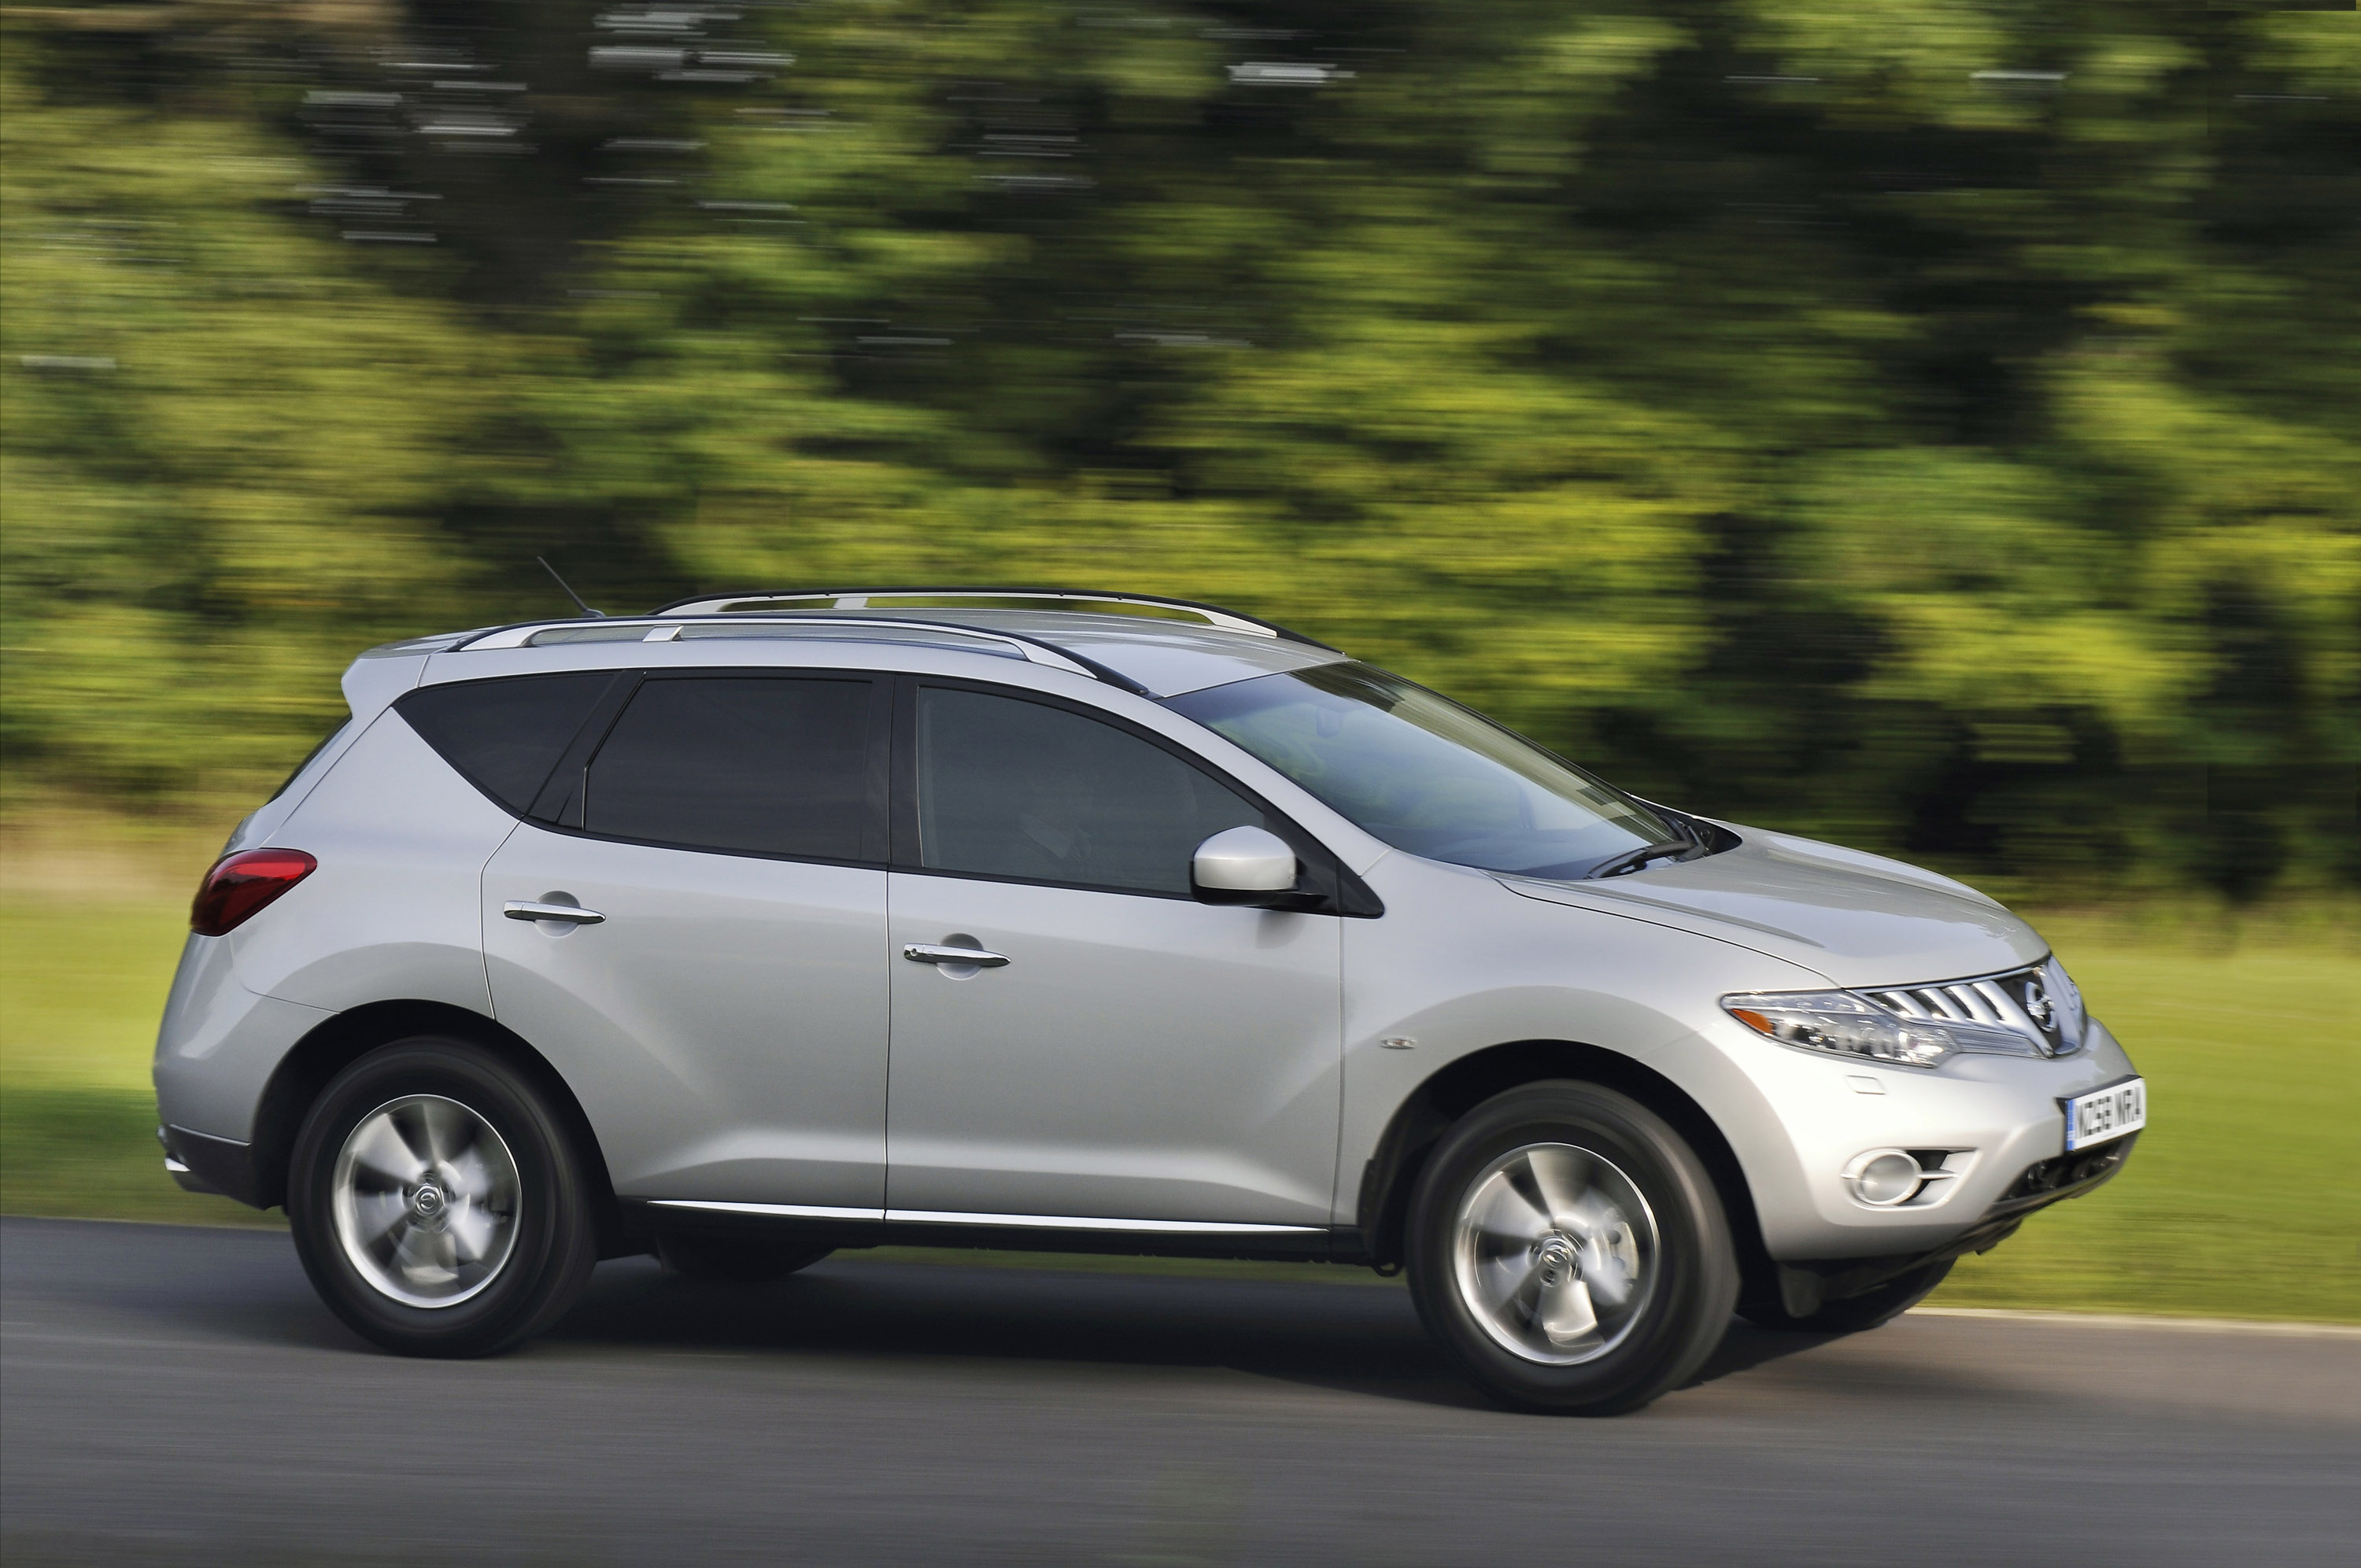 2003 Nissan Murano Suv Consumer Reviews Edmunds Html